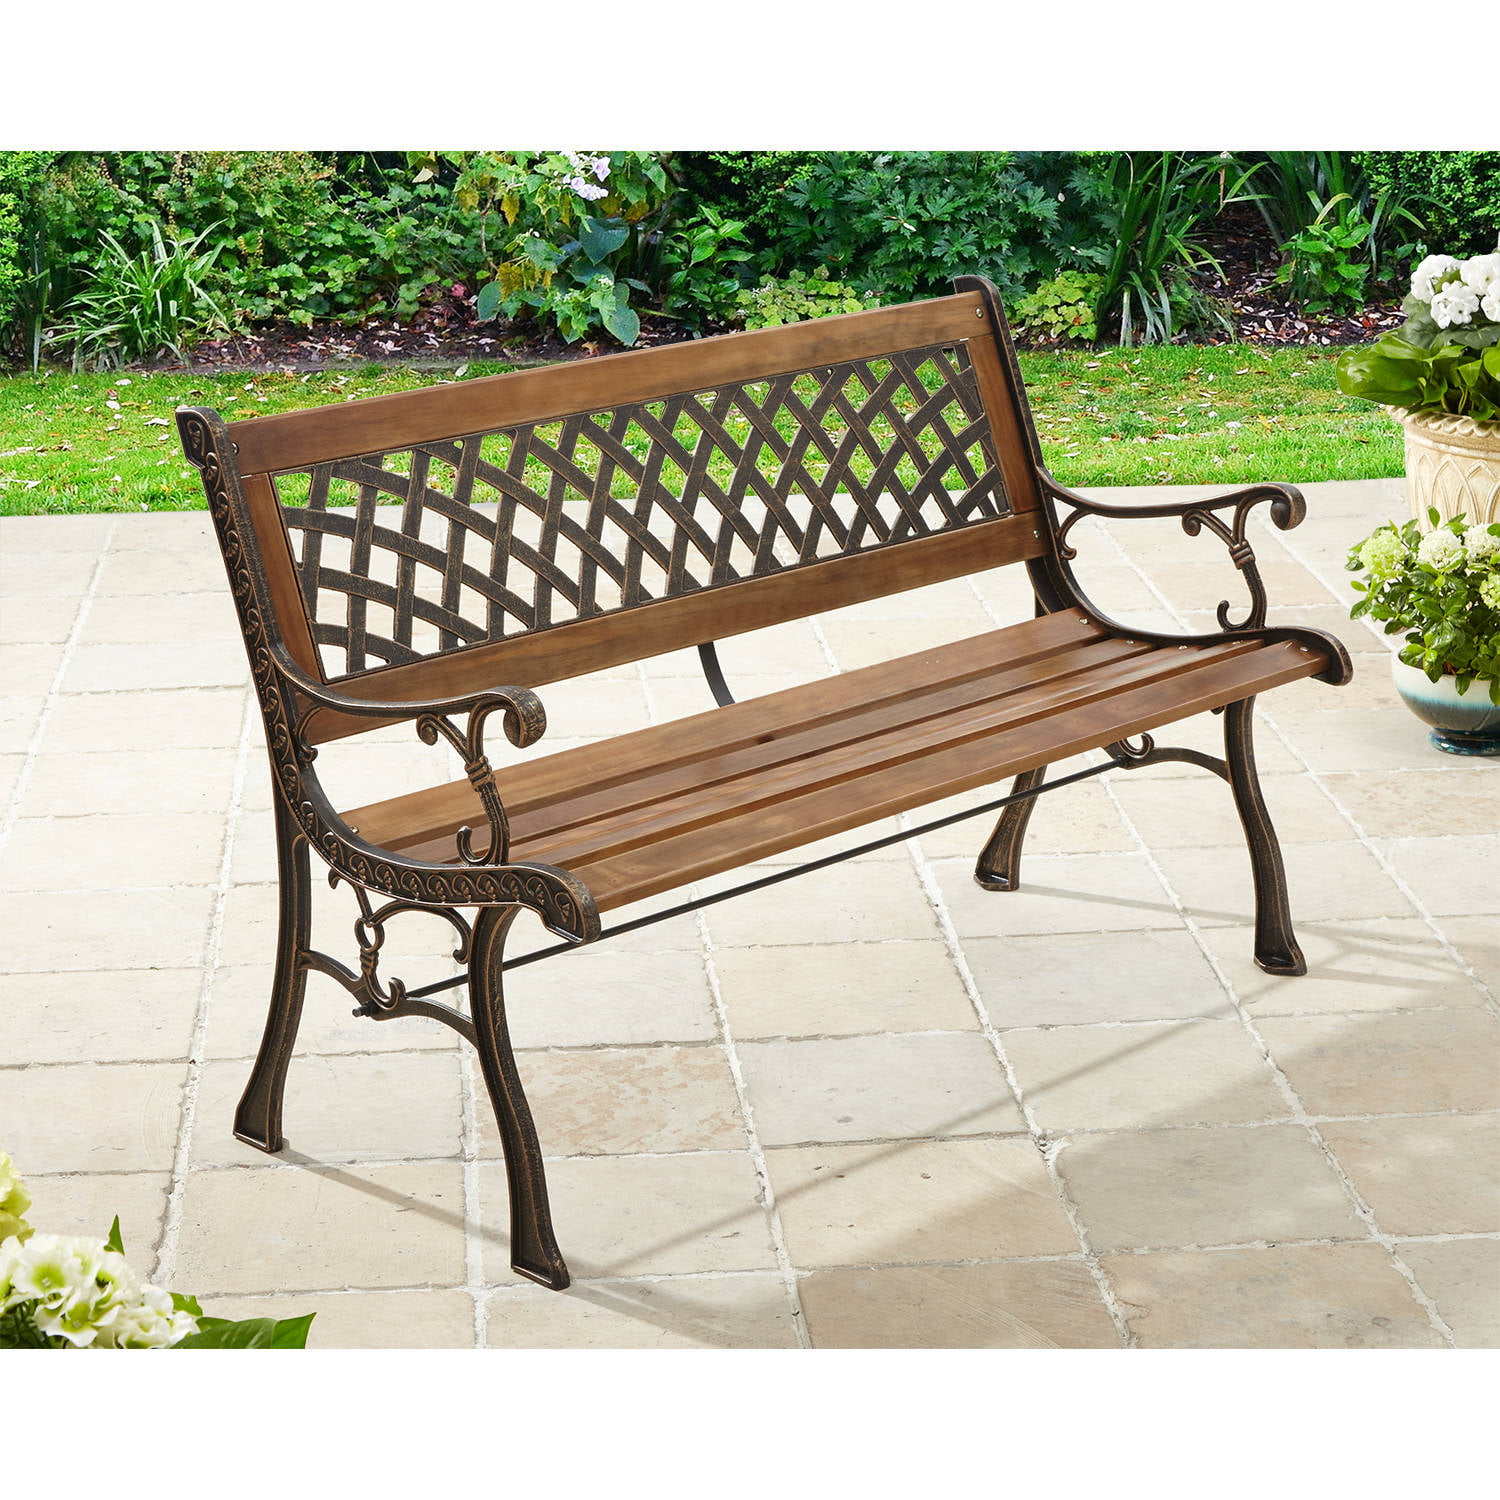 Better Homes and Gardens Lattice Bench, Antique Bronze Natural by